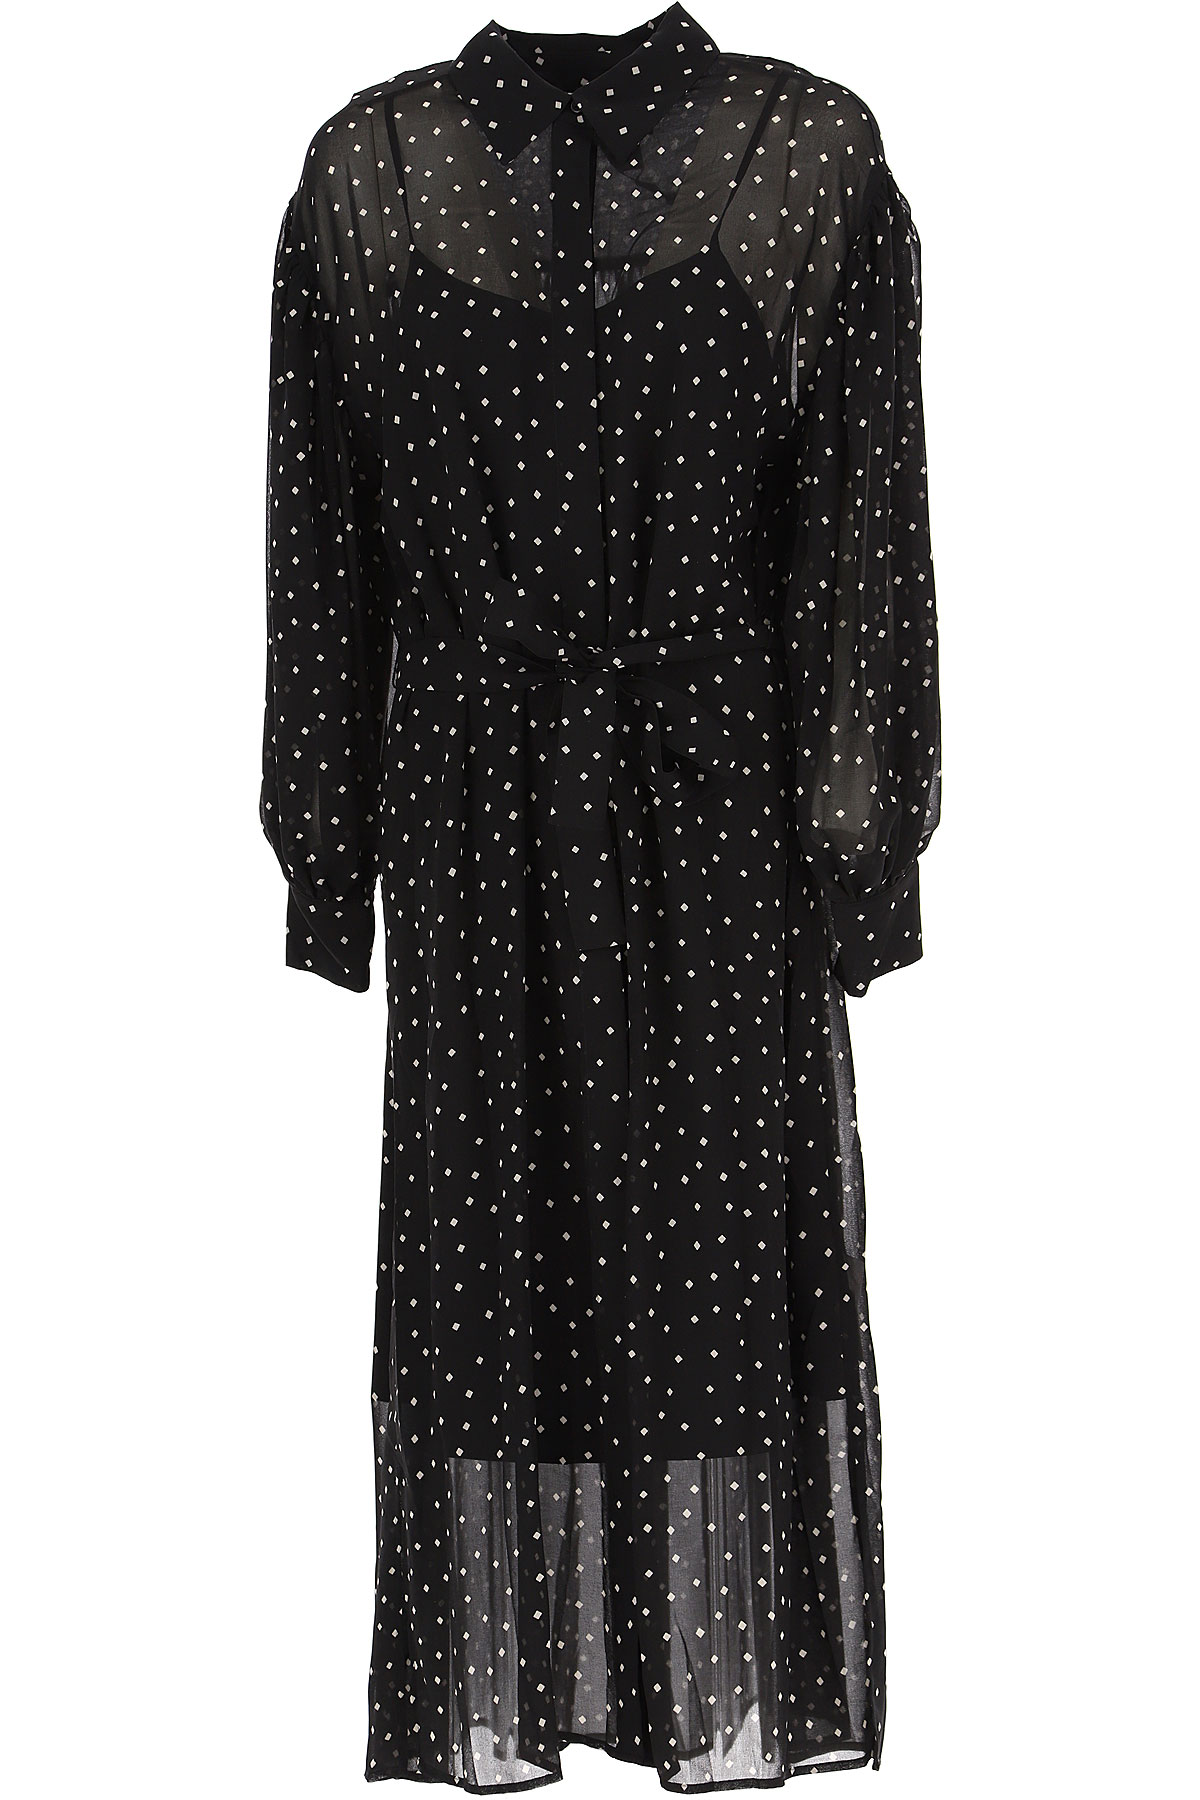 DKNY Dress for Women, Evening Cocktail Party On Sale, Black, polyestere, 2019, 10 2 4 6 8